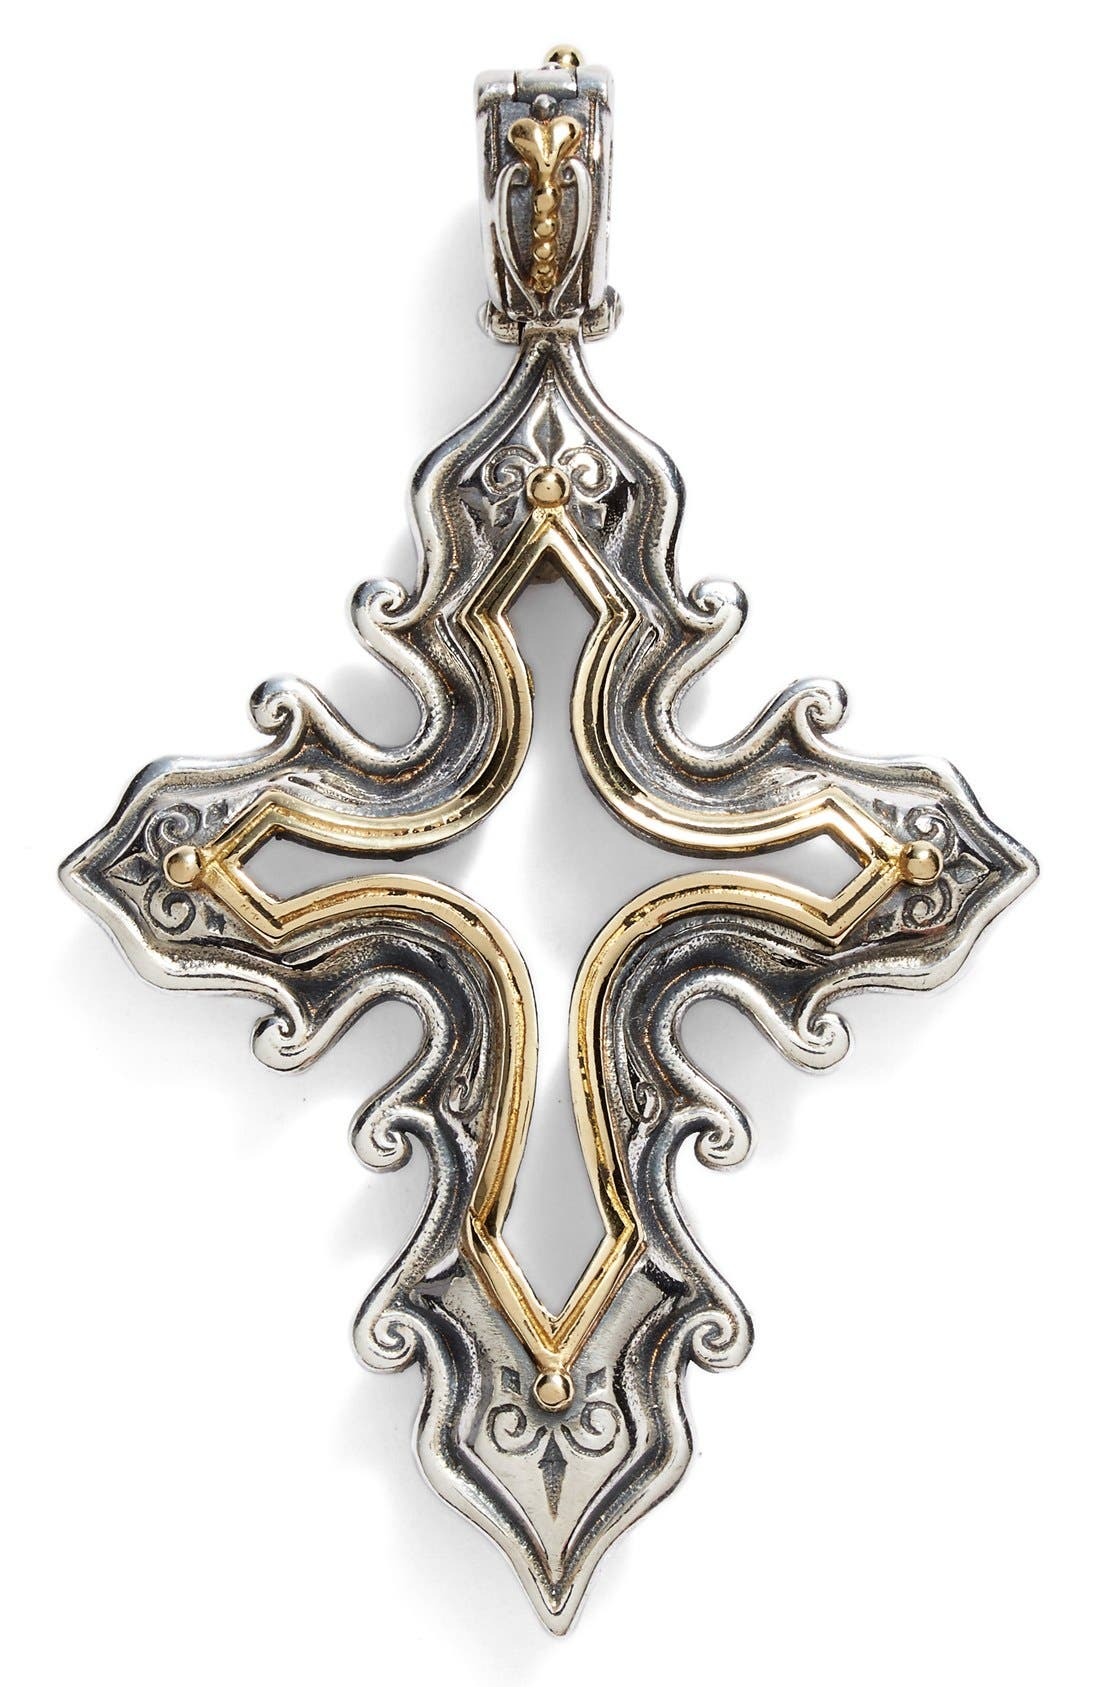 'Hebe' Openwork Cross Pendant,                             Main thumbnail 1, color,                             Silver/ Gold